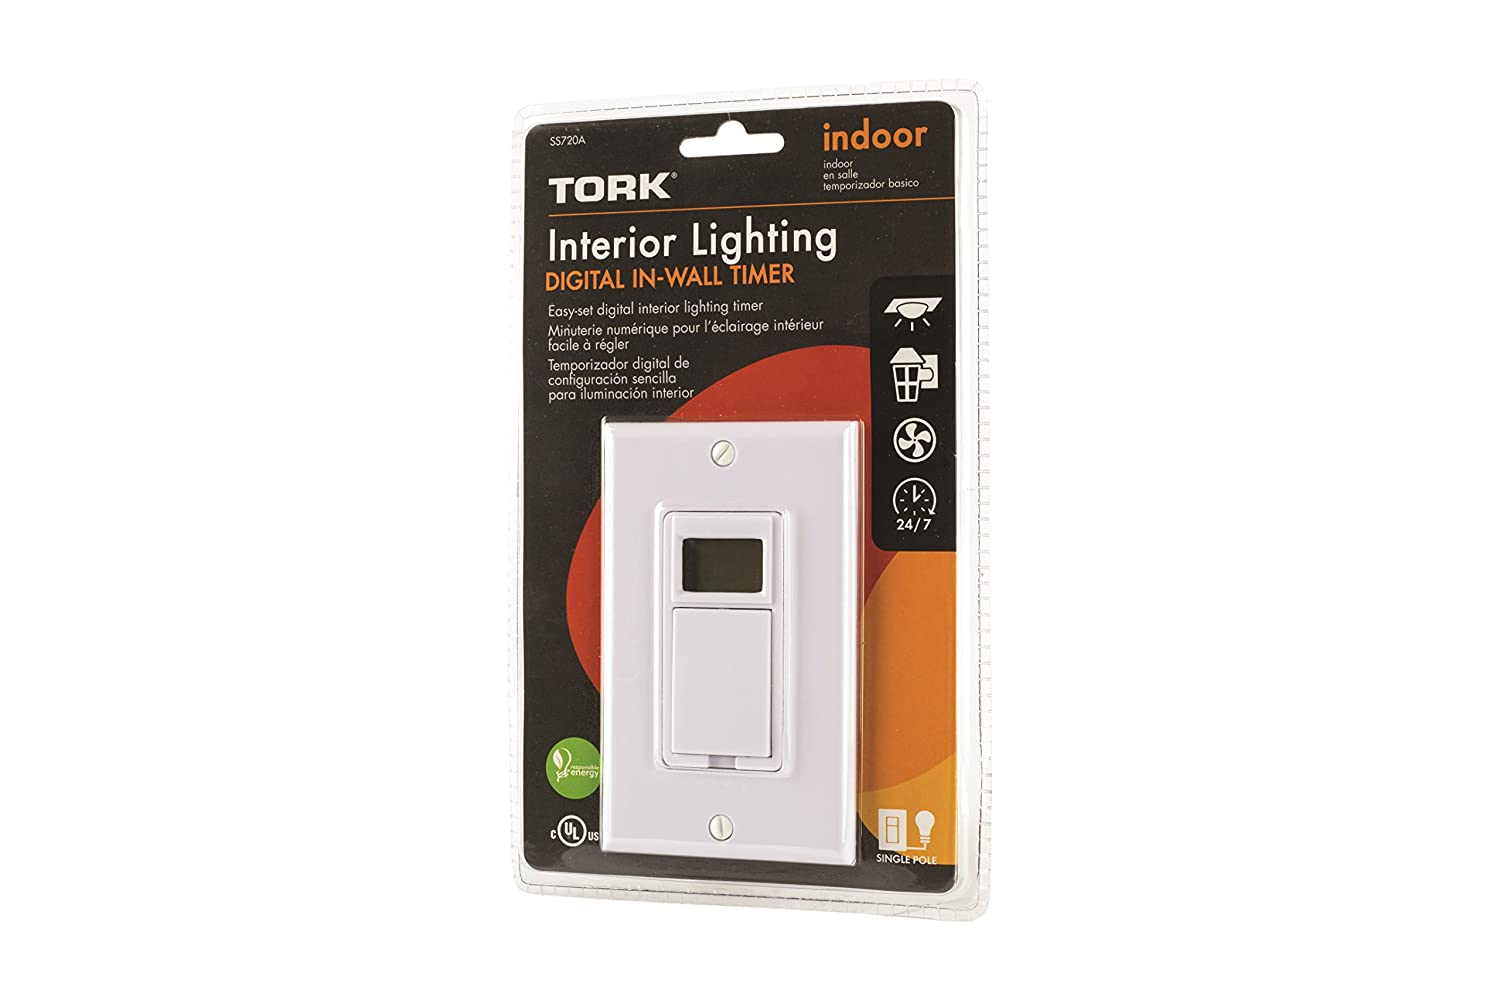 Tork SS720A - 24 Hr or 7 Day Digital In-Wall Timer - White: Amazon.com: Industrial & Scientific